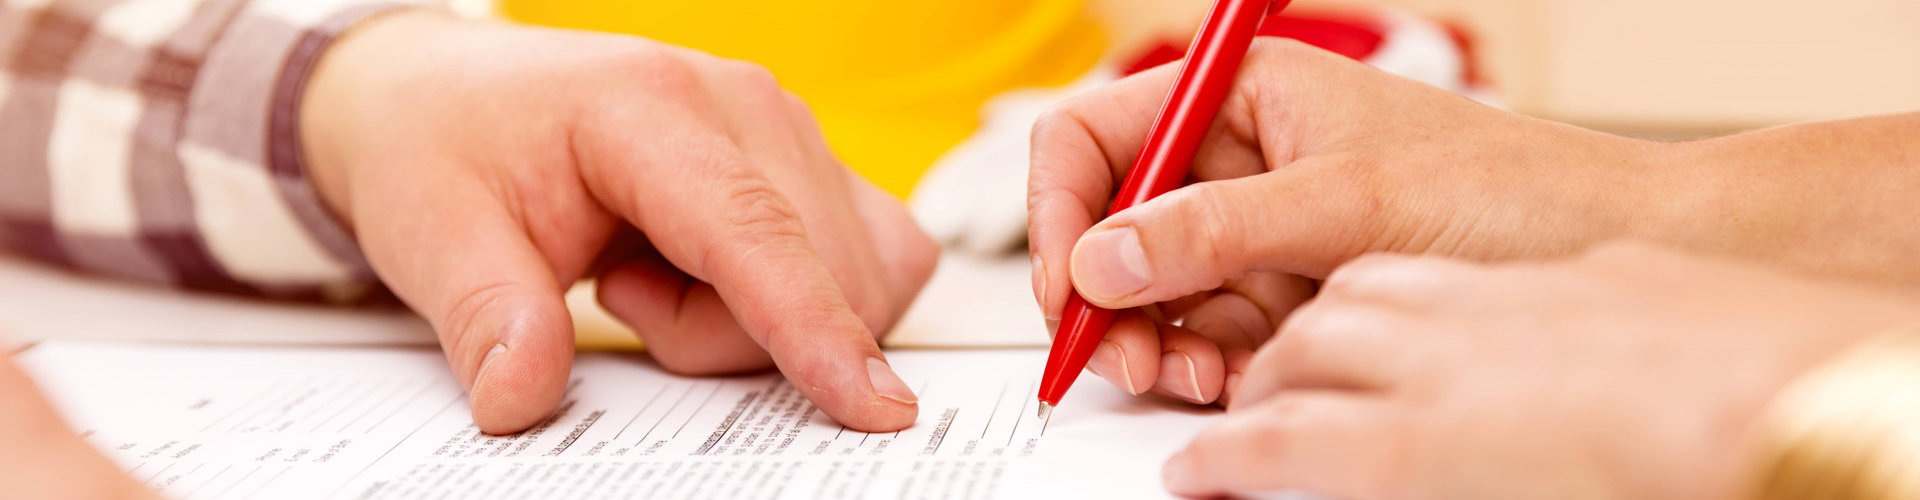 man fingers pointed at the pen signature of the girl